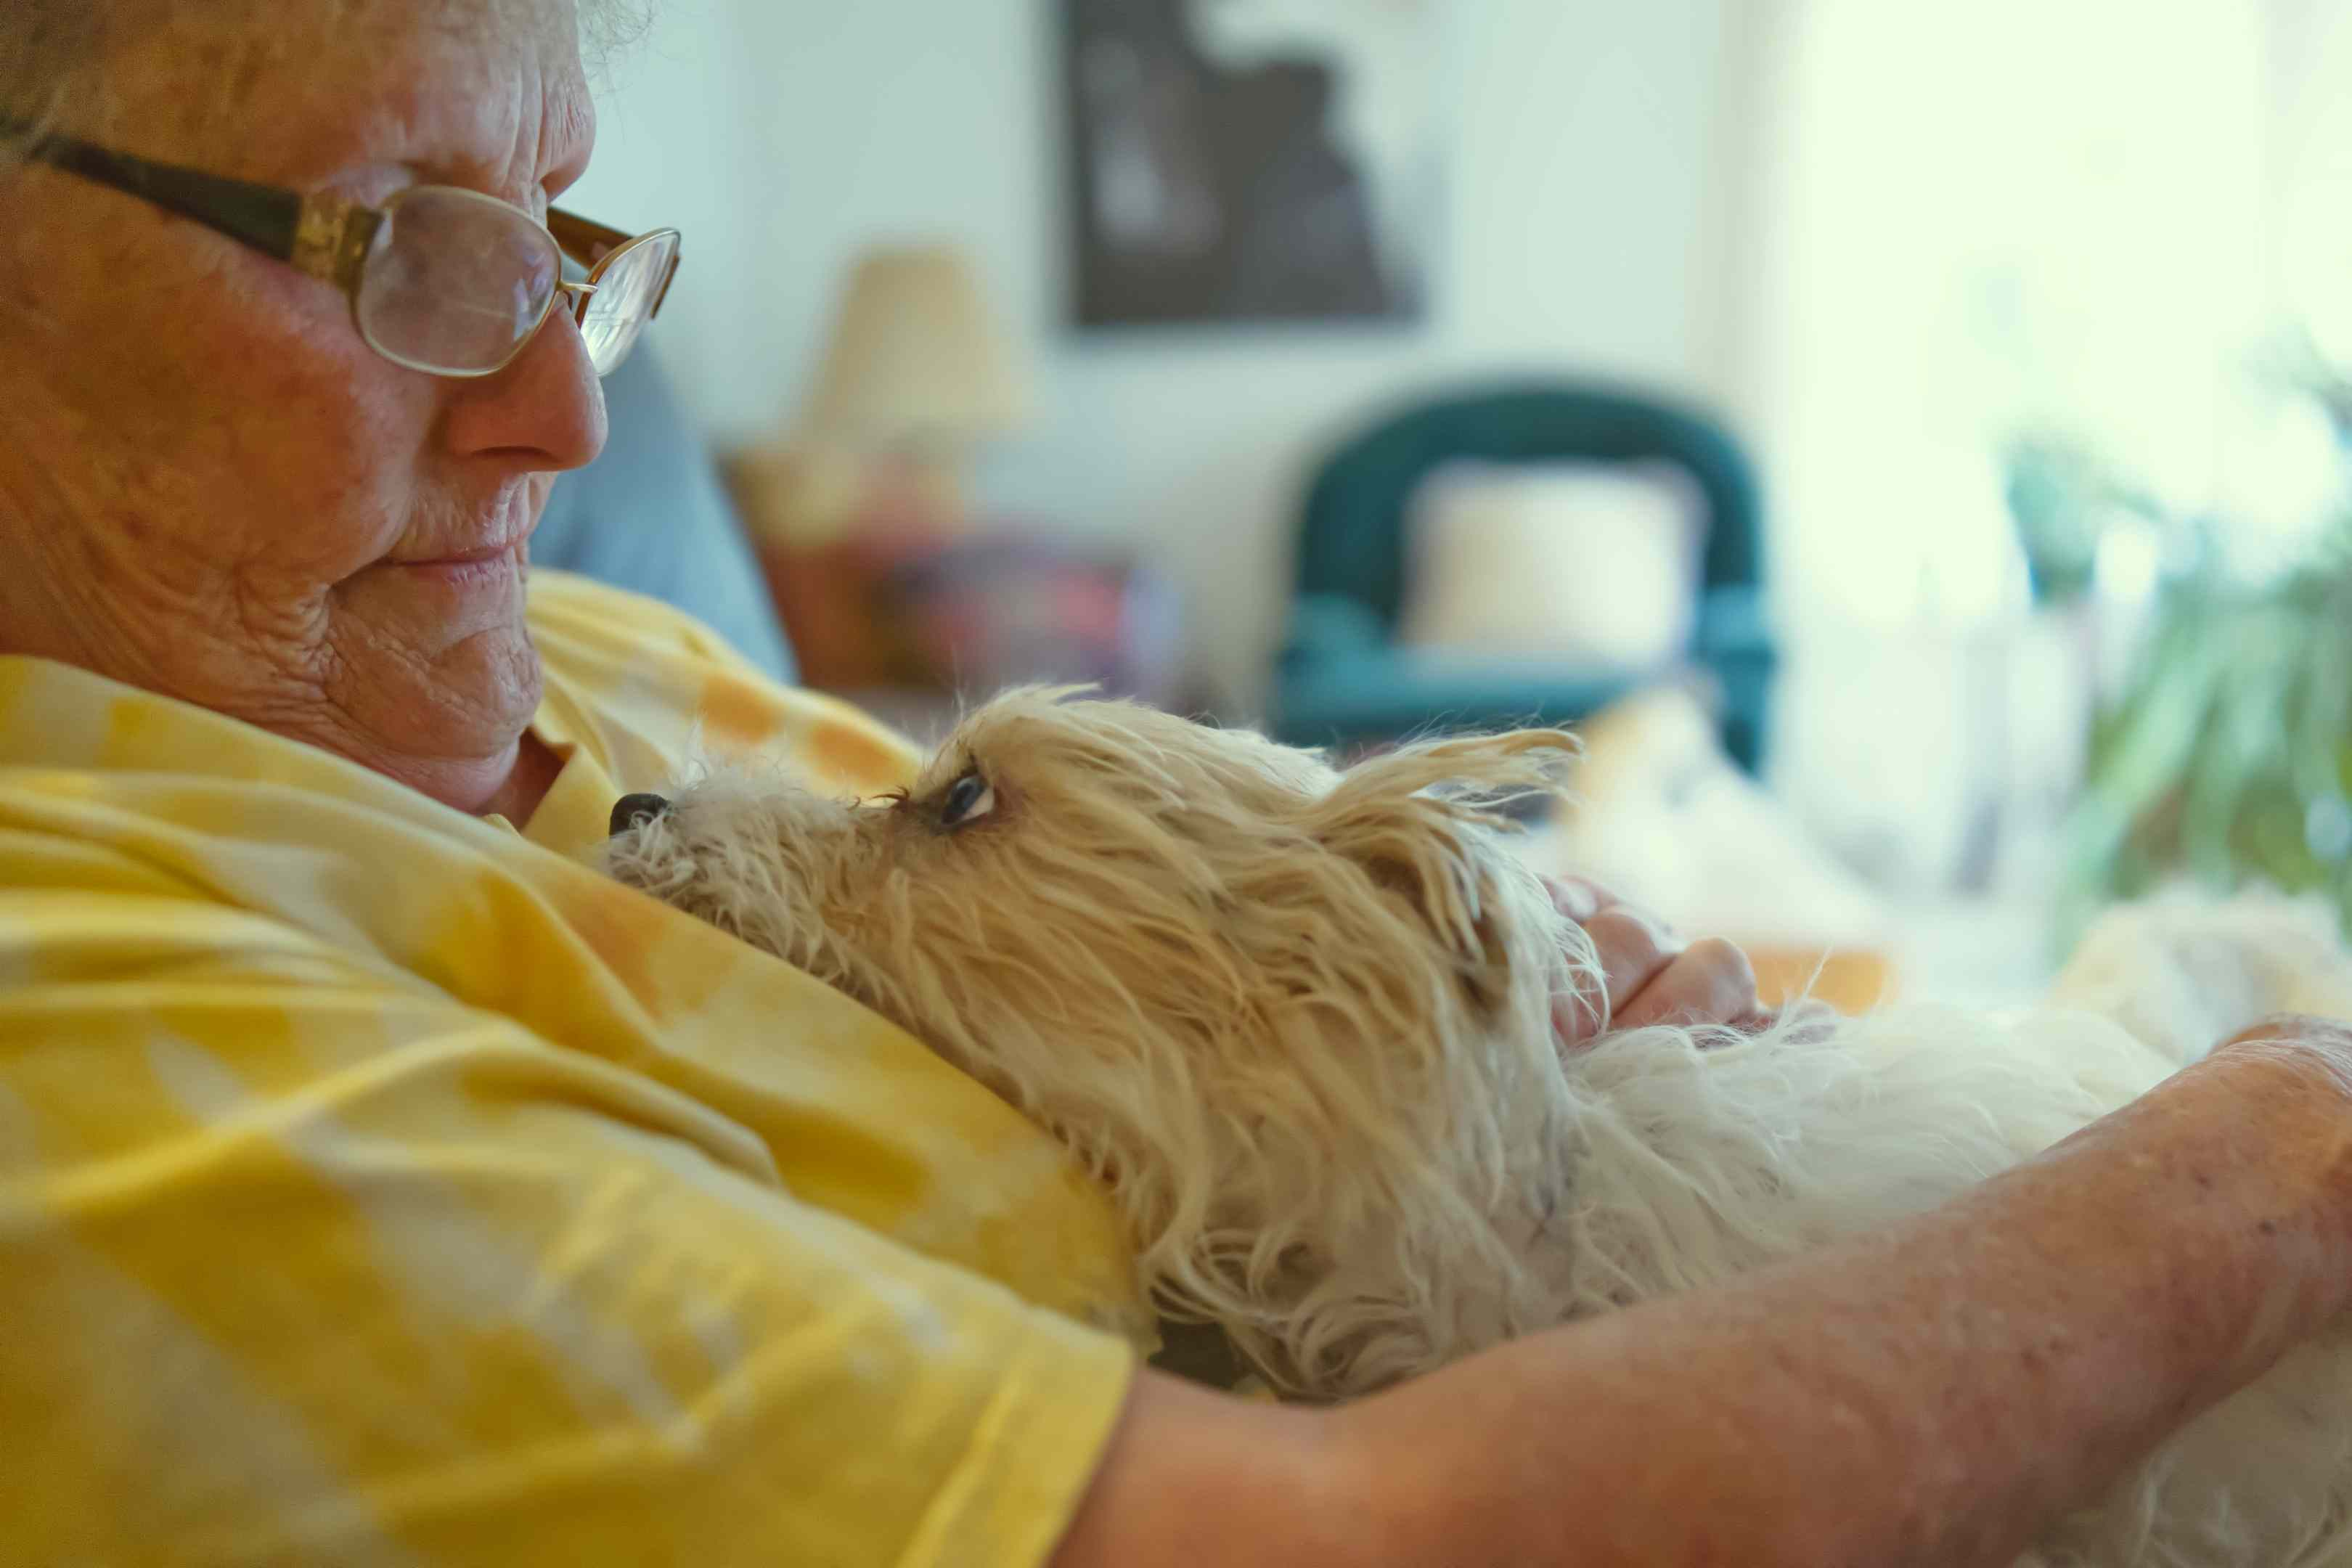 small white terrier dog gazes adoringly at their owner, older woman in yellow shirt